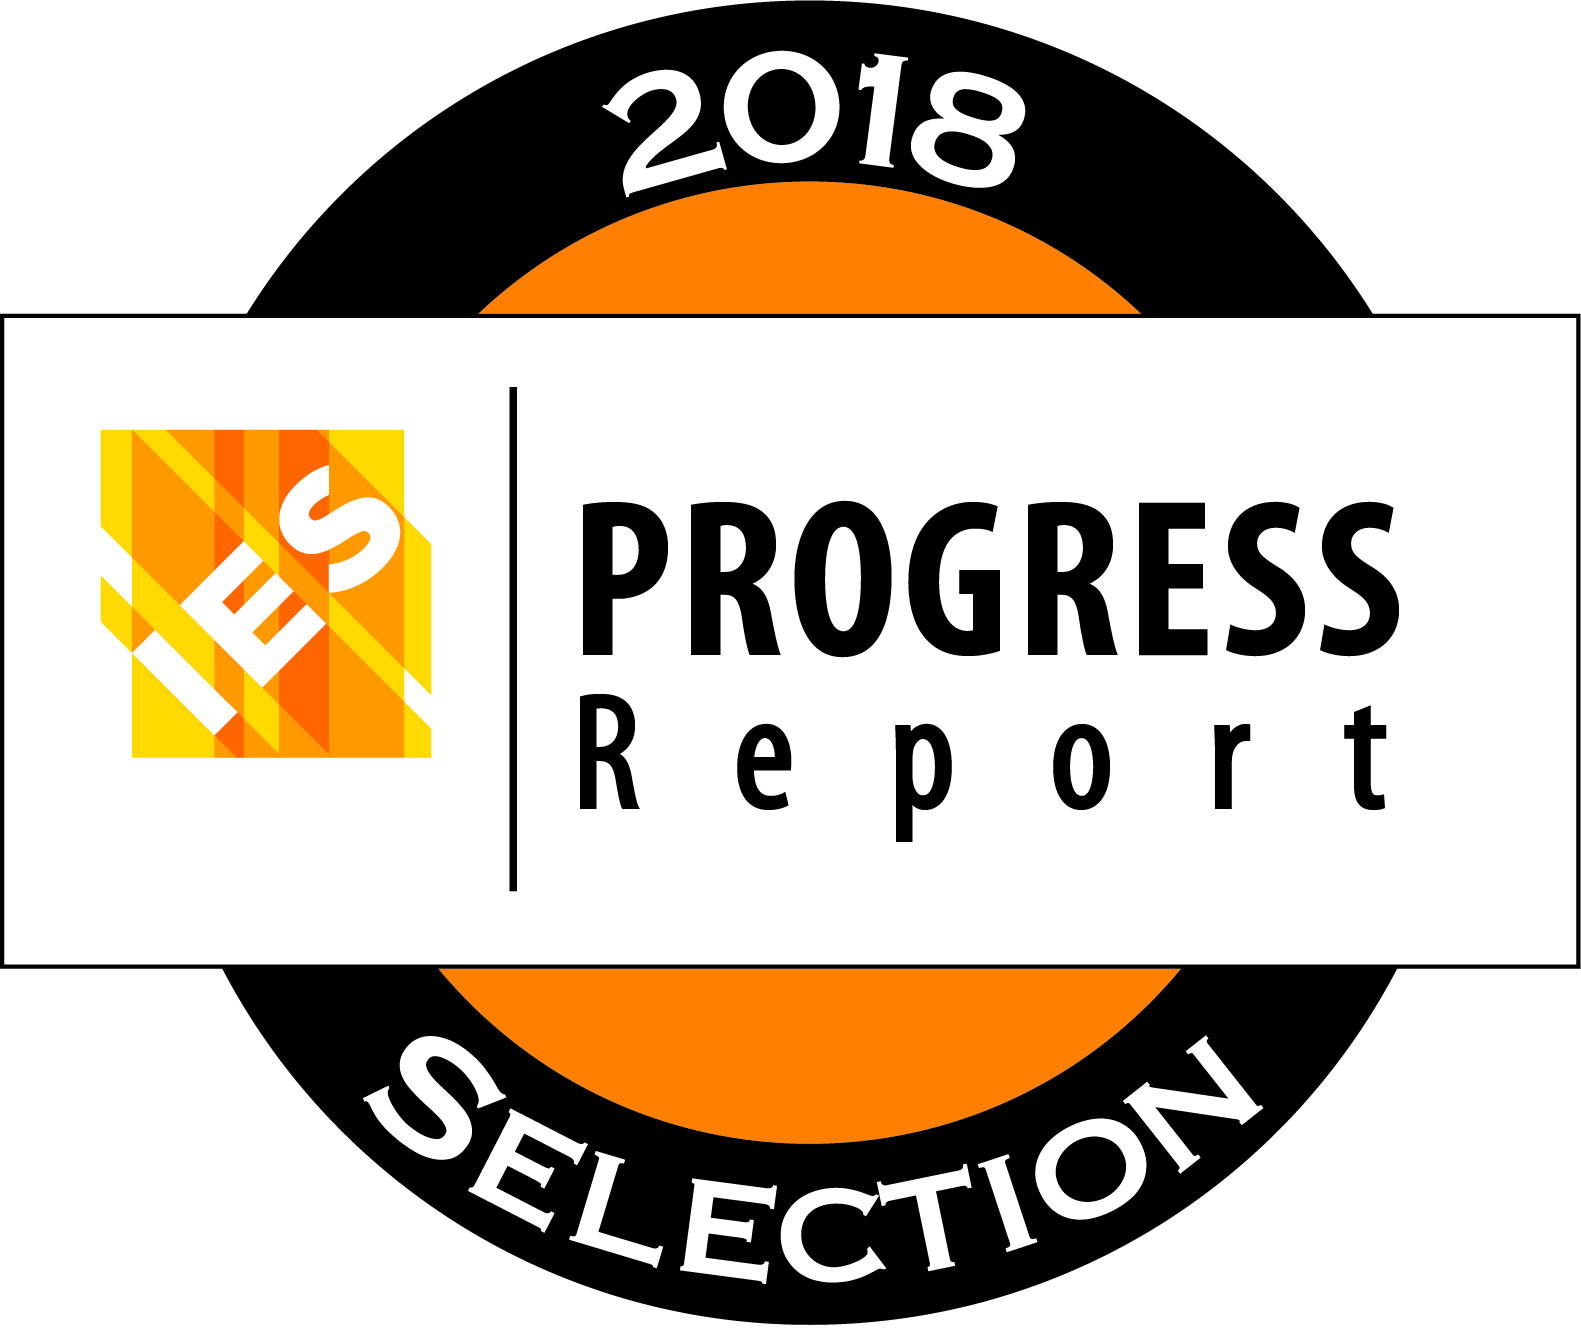 IES Progress Report Seal